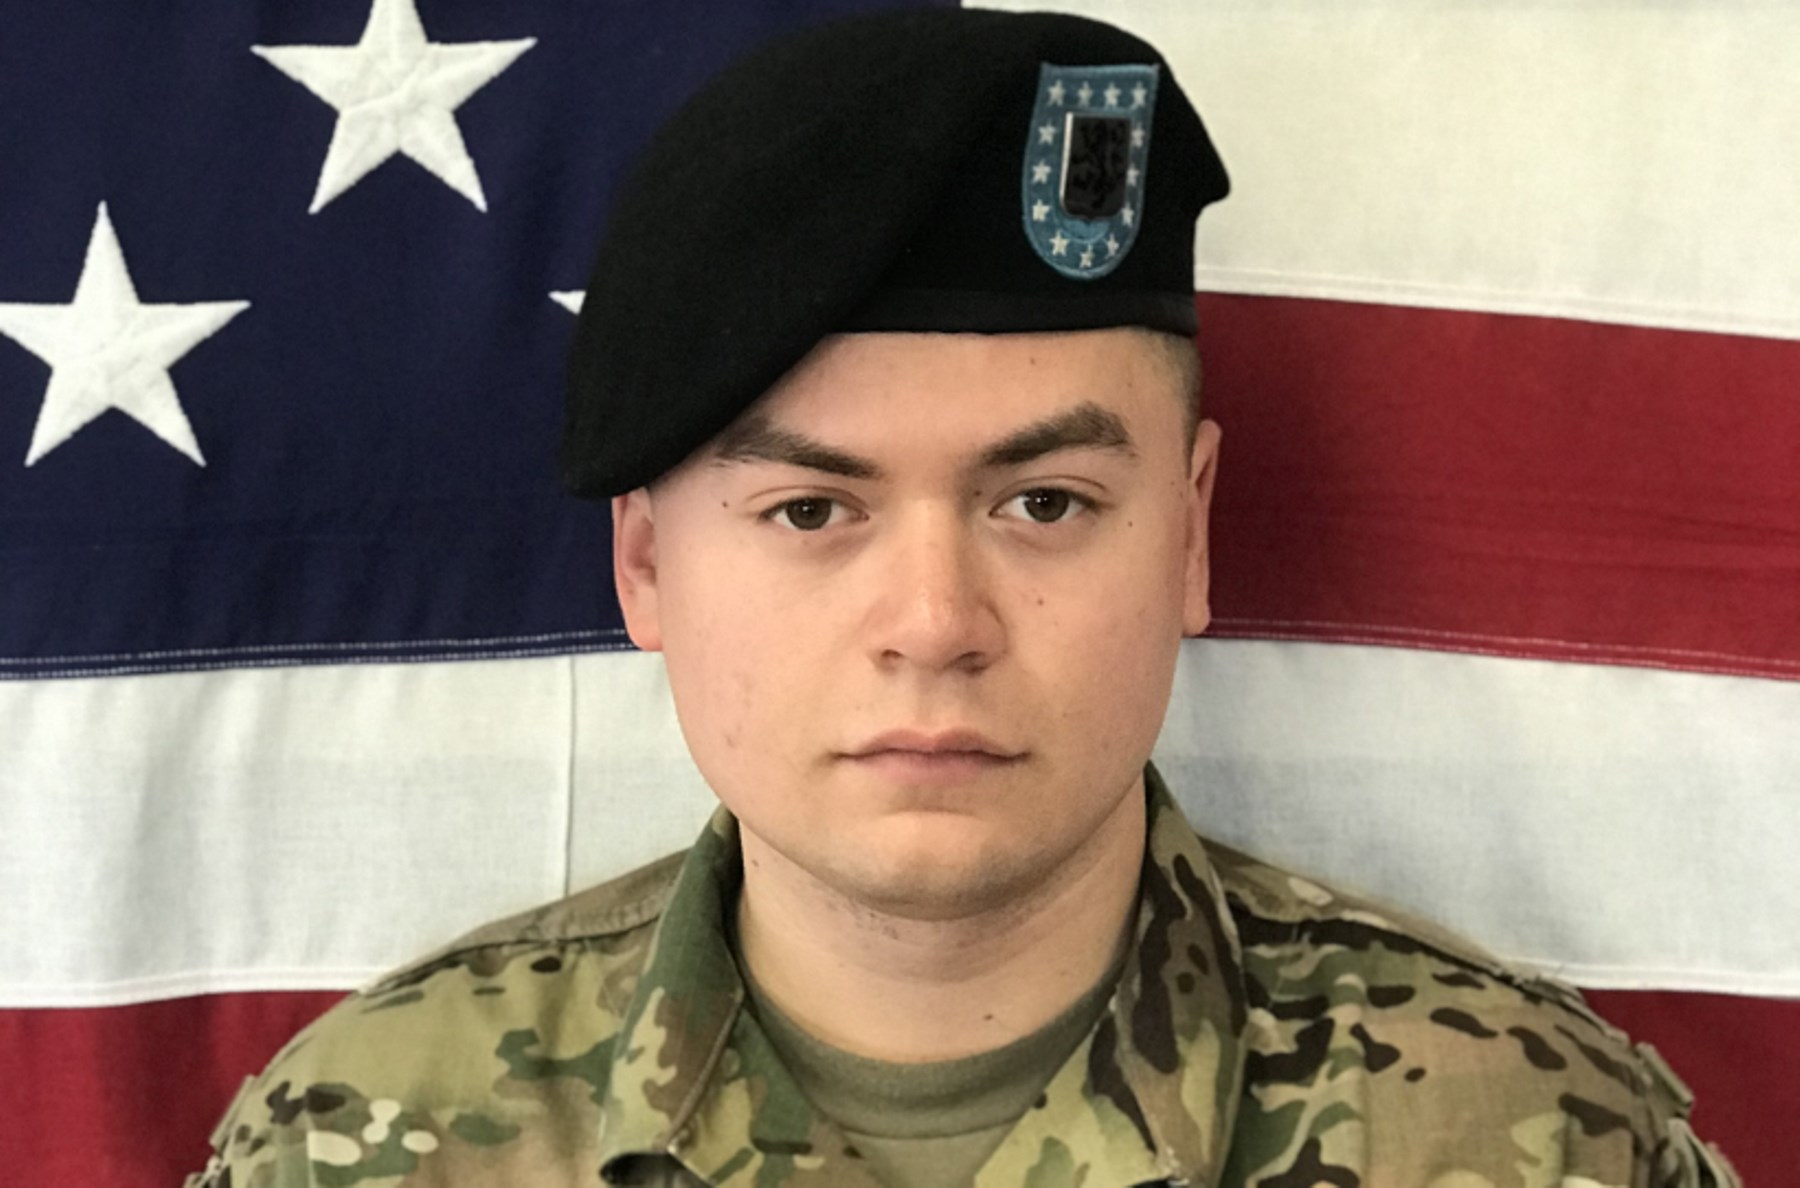 Army IDs Infantryman Killed in Apparent Insider Attack in Afghanistan